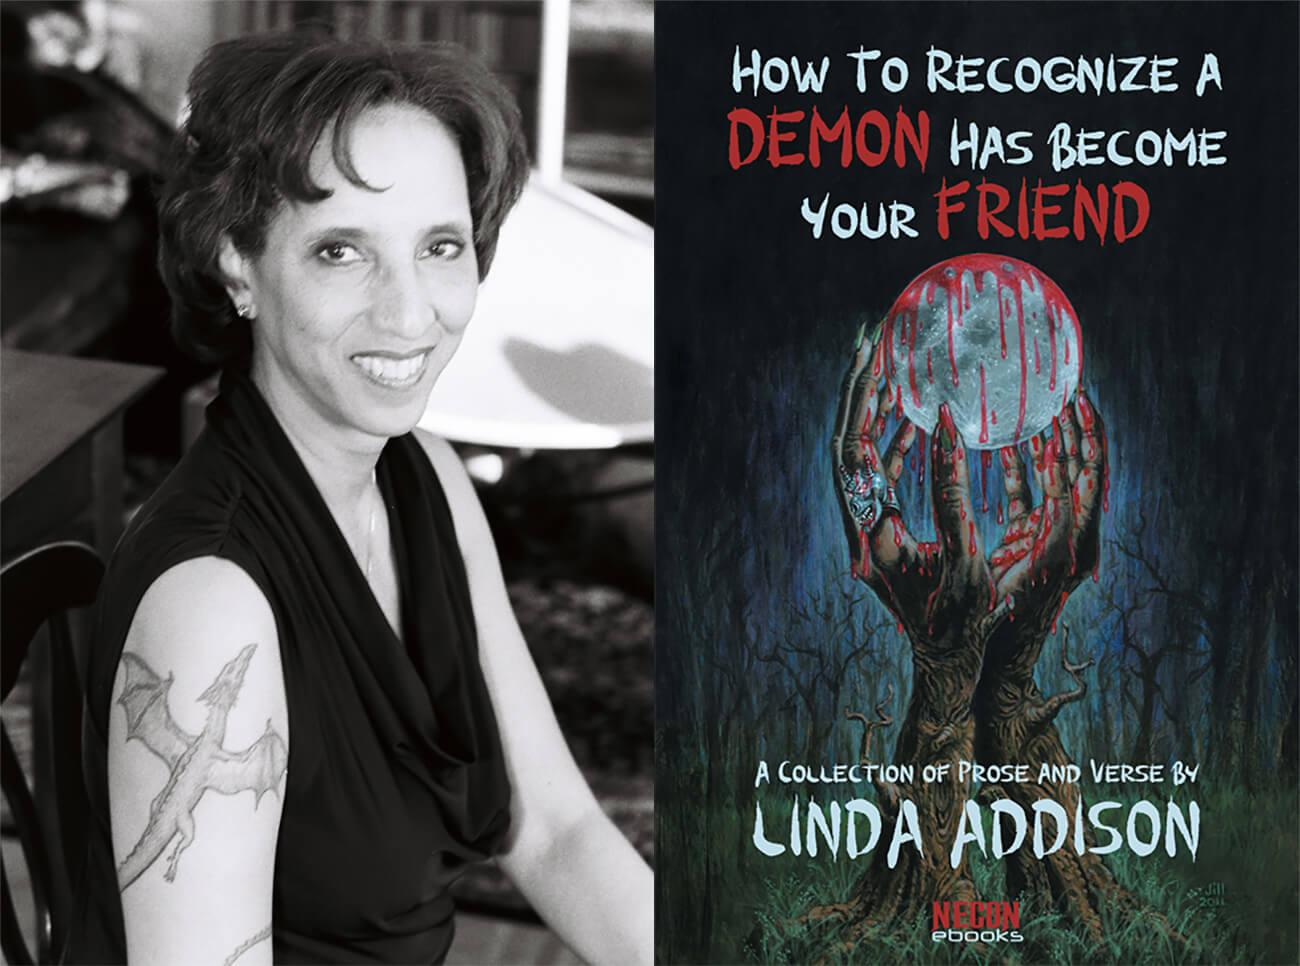 How To Recognize A Demon Has Become Your Friend - Book Review